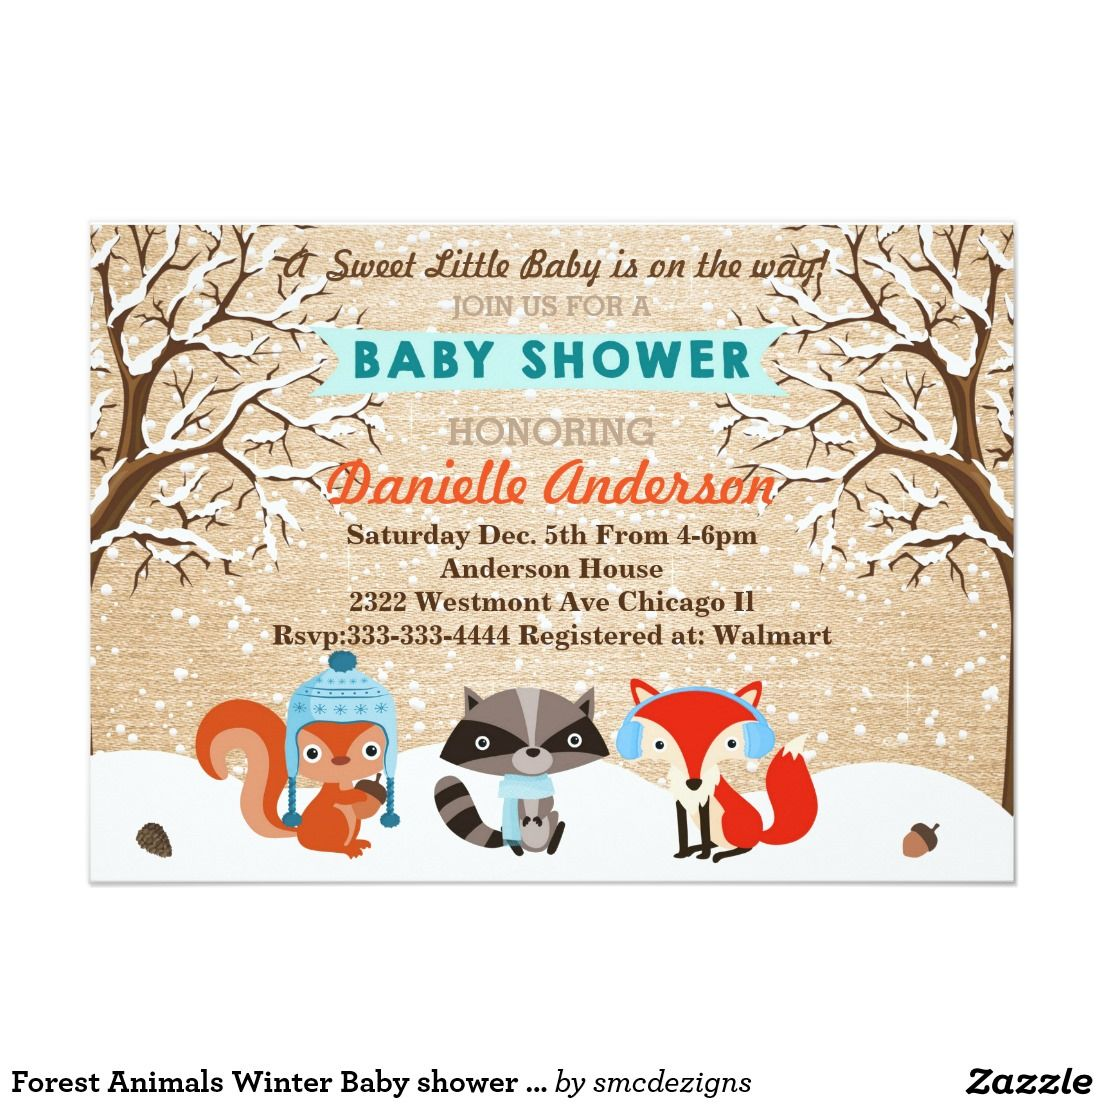 Baby Shower Invitations Free Templates Online Amazing Forest Animals Winter Baby Shower Invitation  Winter Baby Showers .